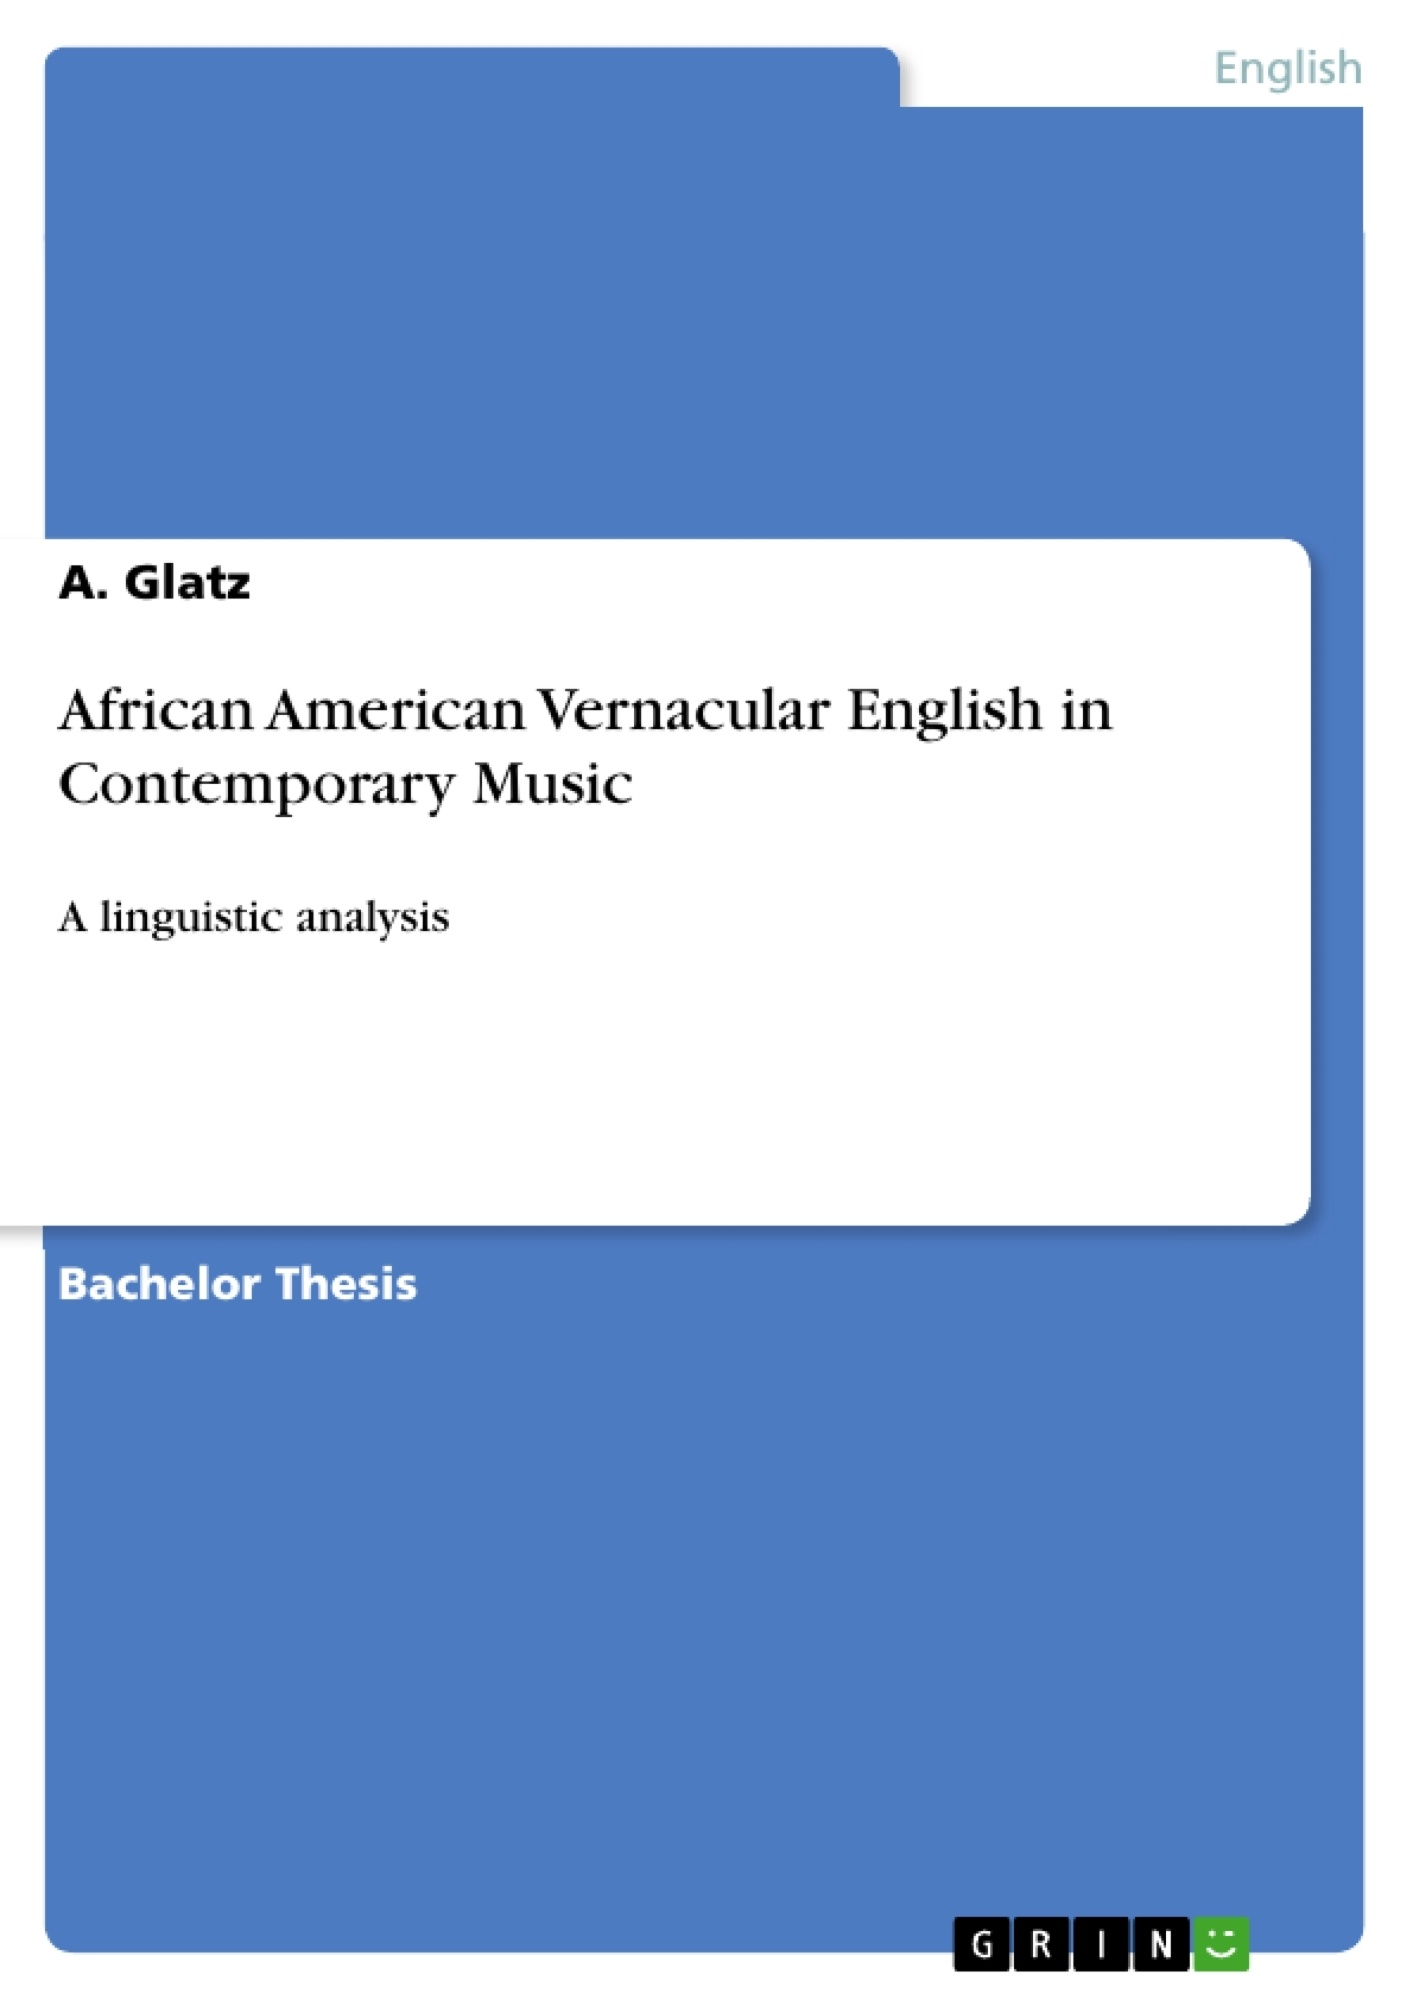 Title: African American Vernacular English in Contemporary Music